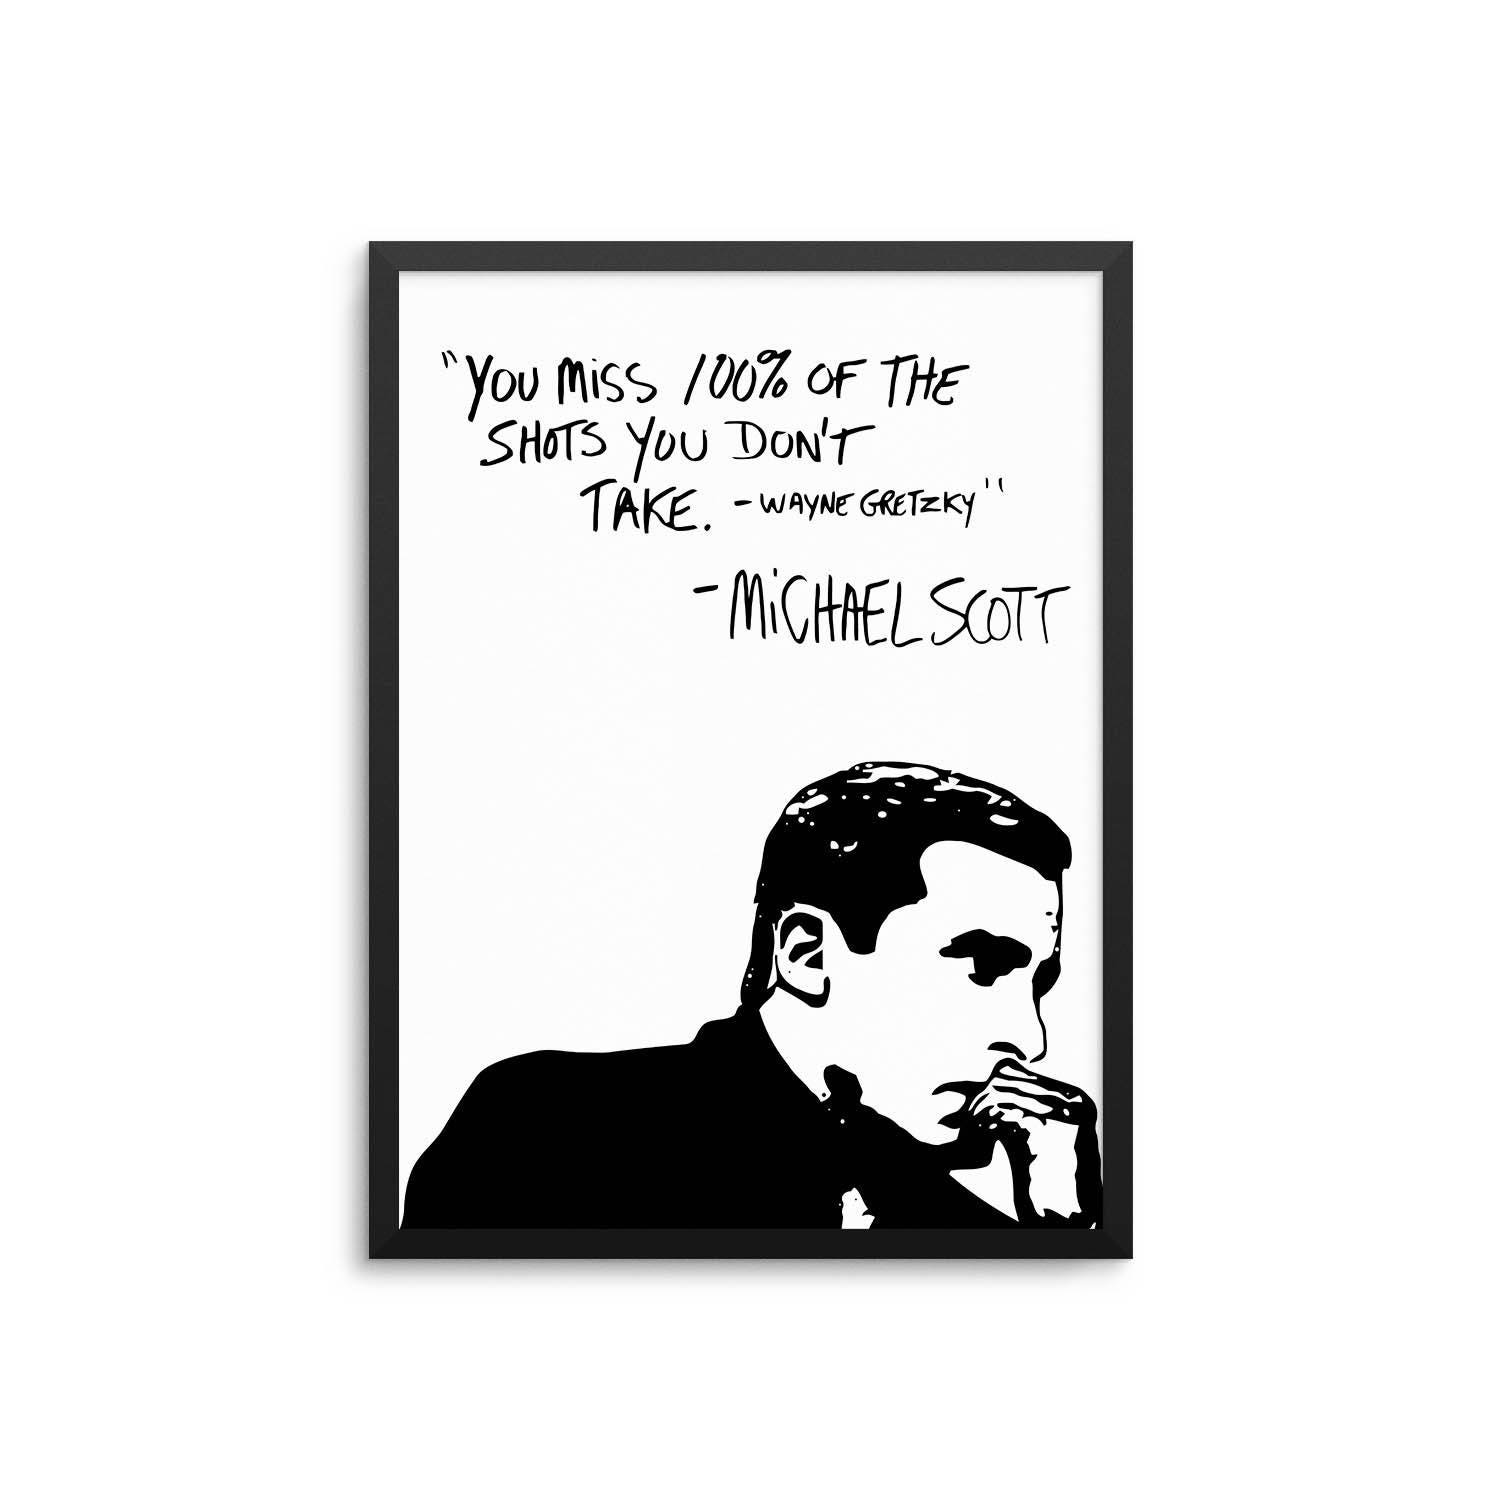 Michael Scott Wayne Gretzky Quote Poster The Office TV ...